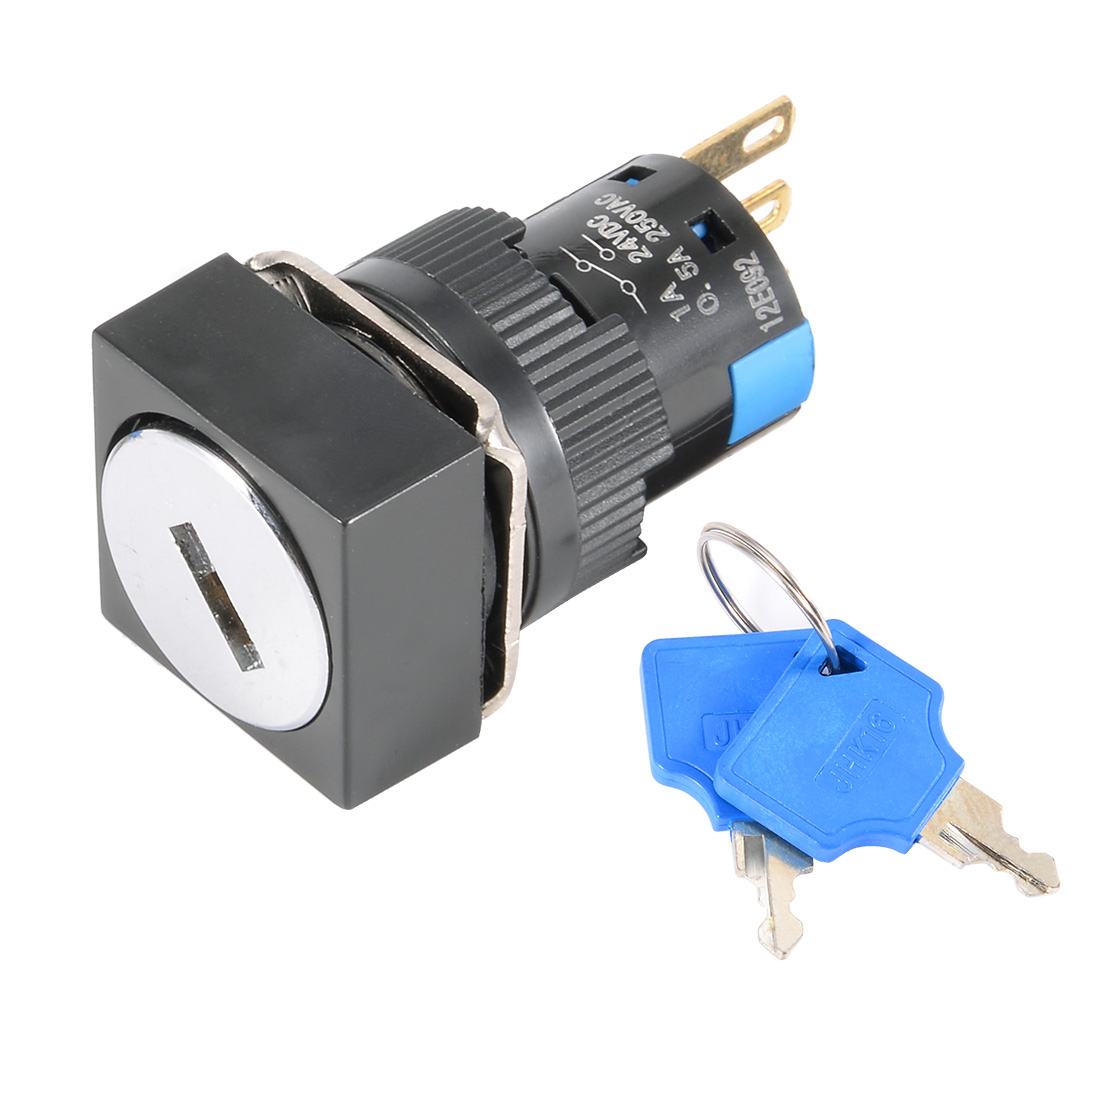 16mm Thread Square 2 Position Rotary Selector Key Lock Switch SPDT w ...